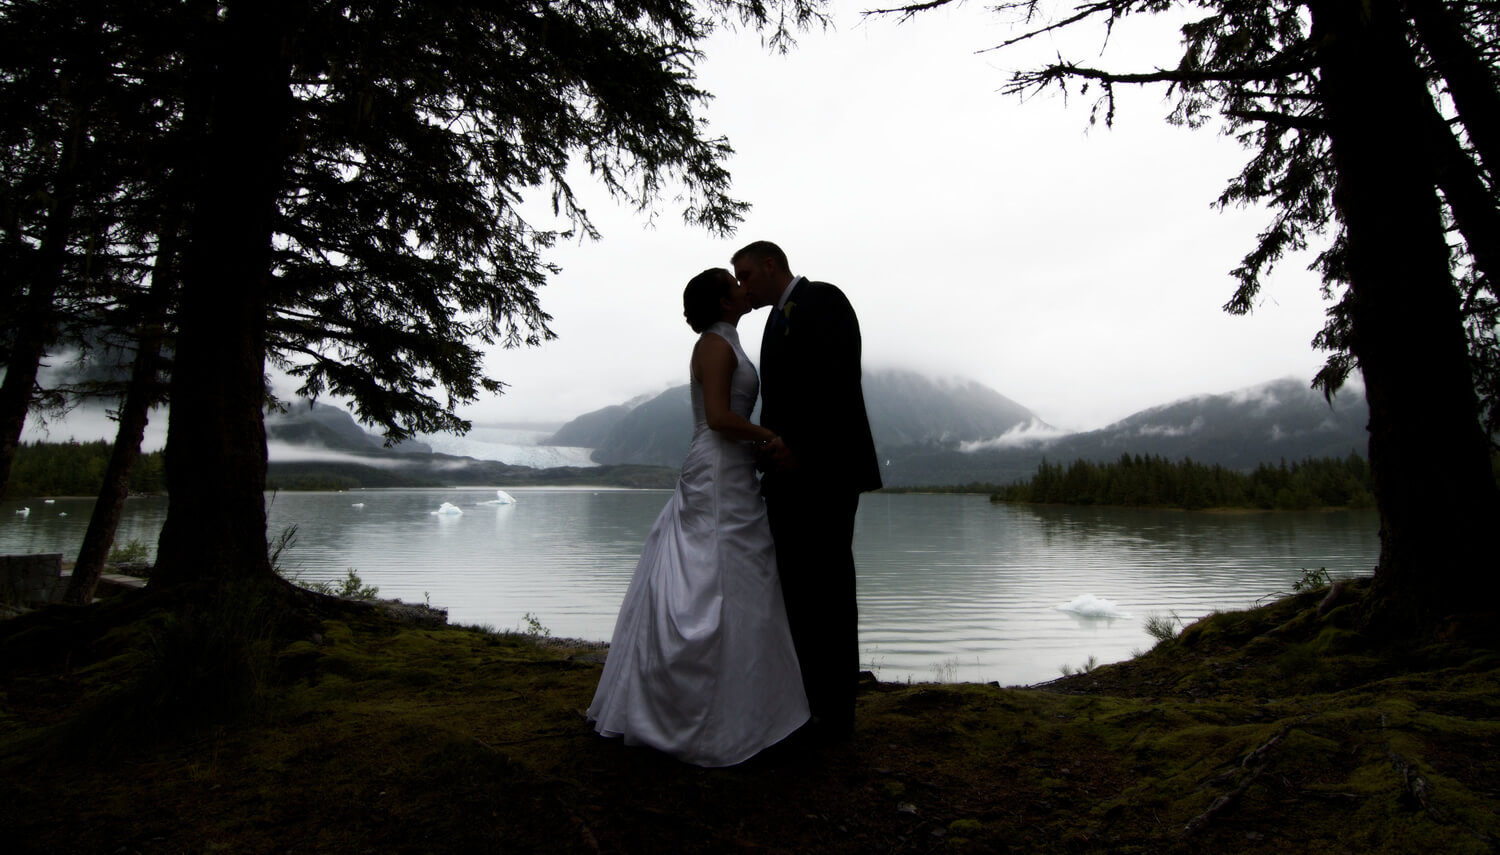 First kiss surrounded by the rain forest with a misty lake and glacier in the background